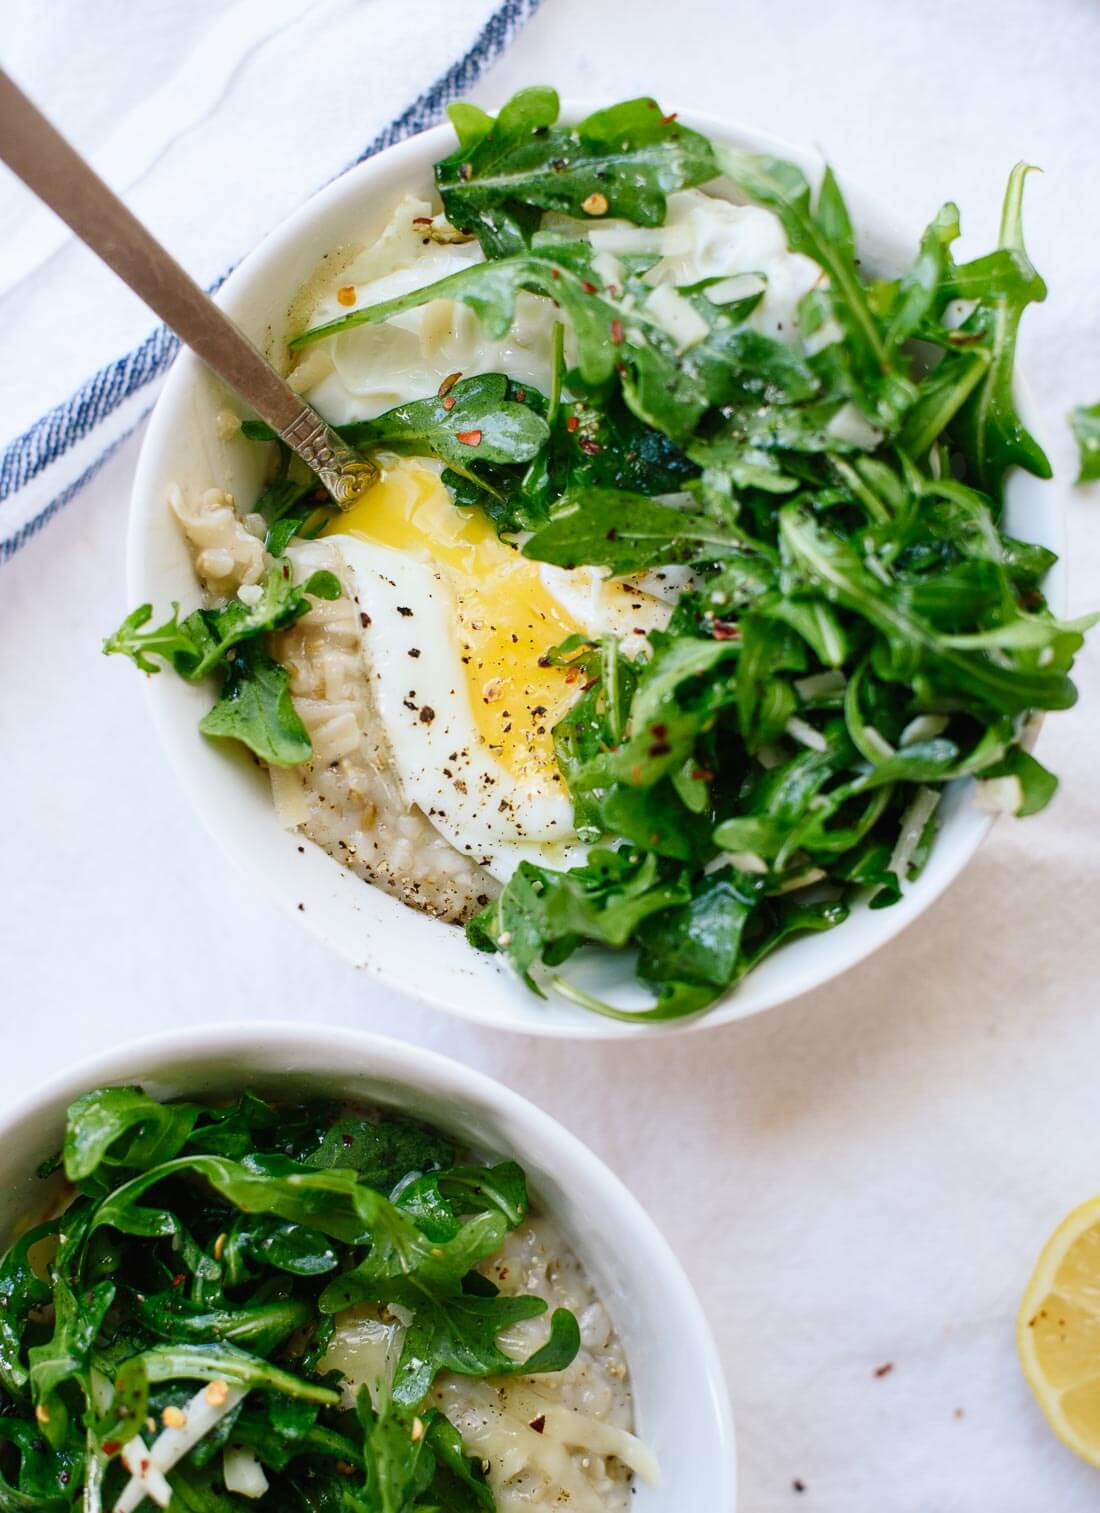 Savory steel cut oatmeal with arugula and a fried egg on top - cookieandkate.com